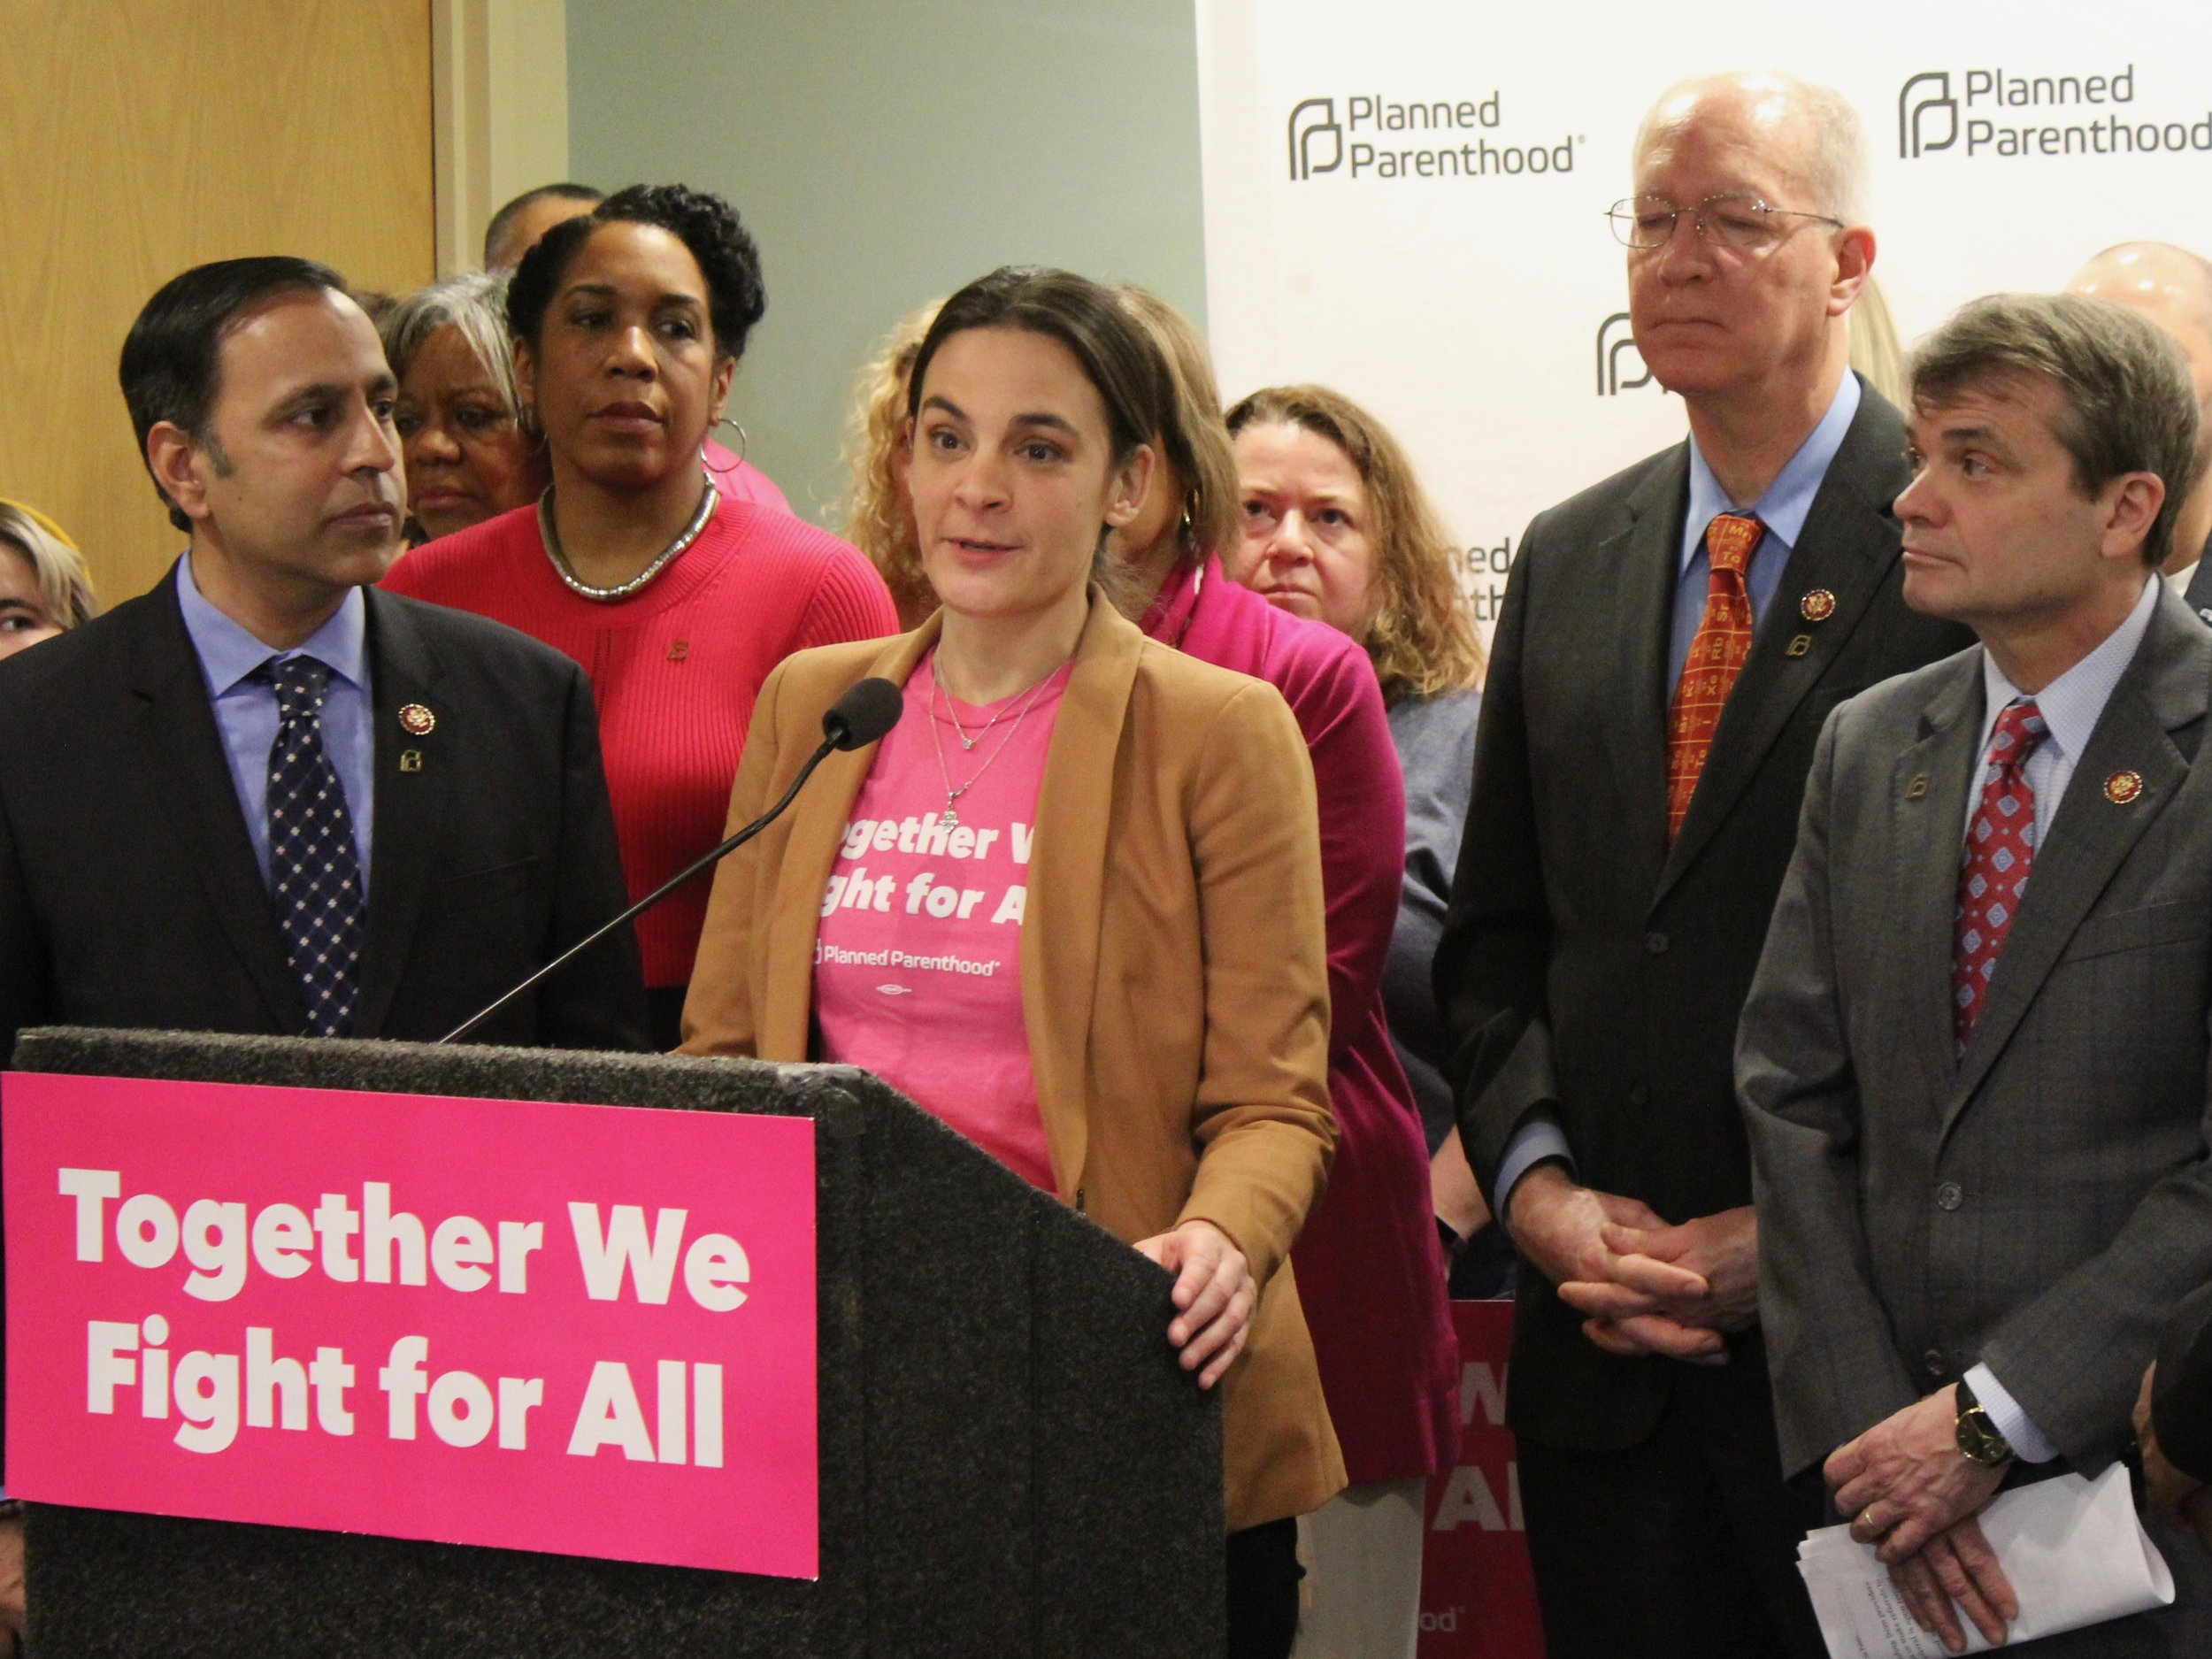 Julie Lynn of Planned Parenthood of Illinois speaks at a news conference in opposition to the Trump Title X gag rule earlier this year. (One Illinois/Ted Cox)